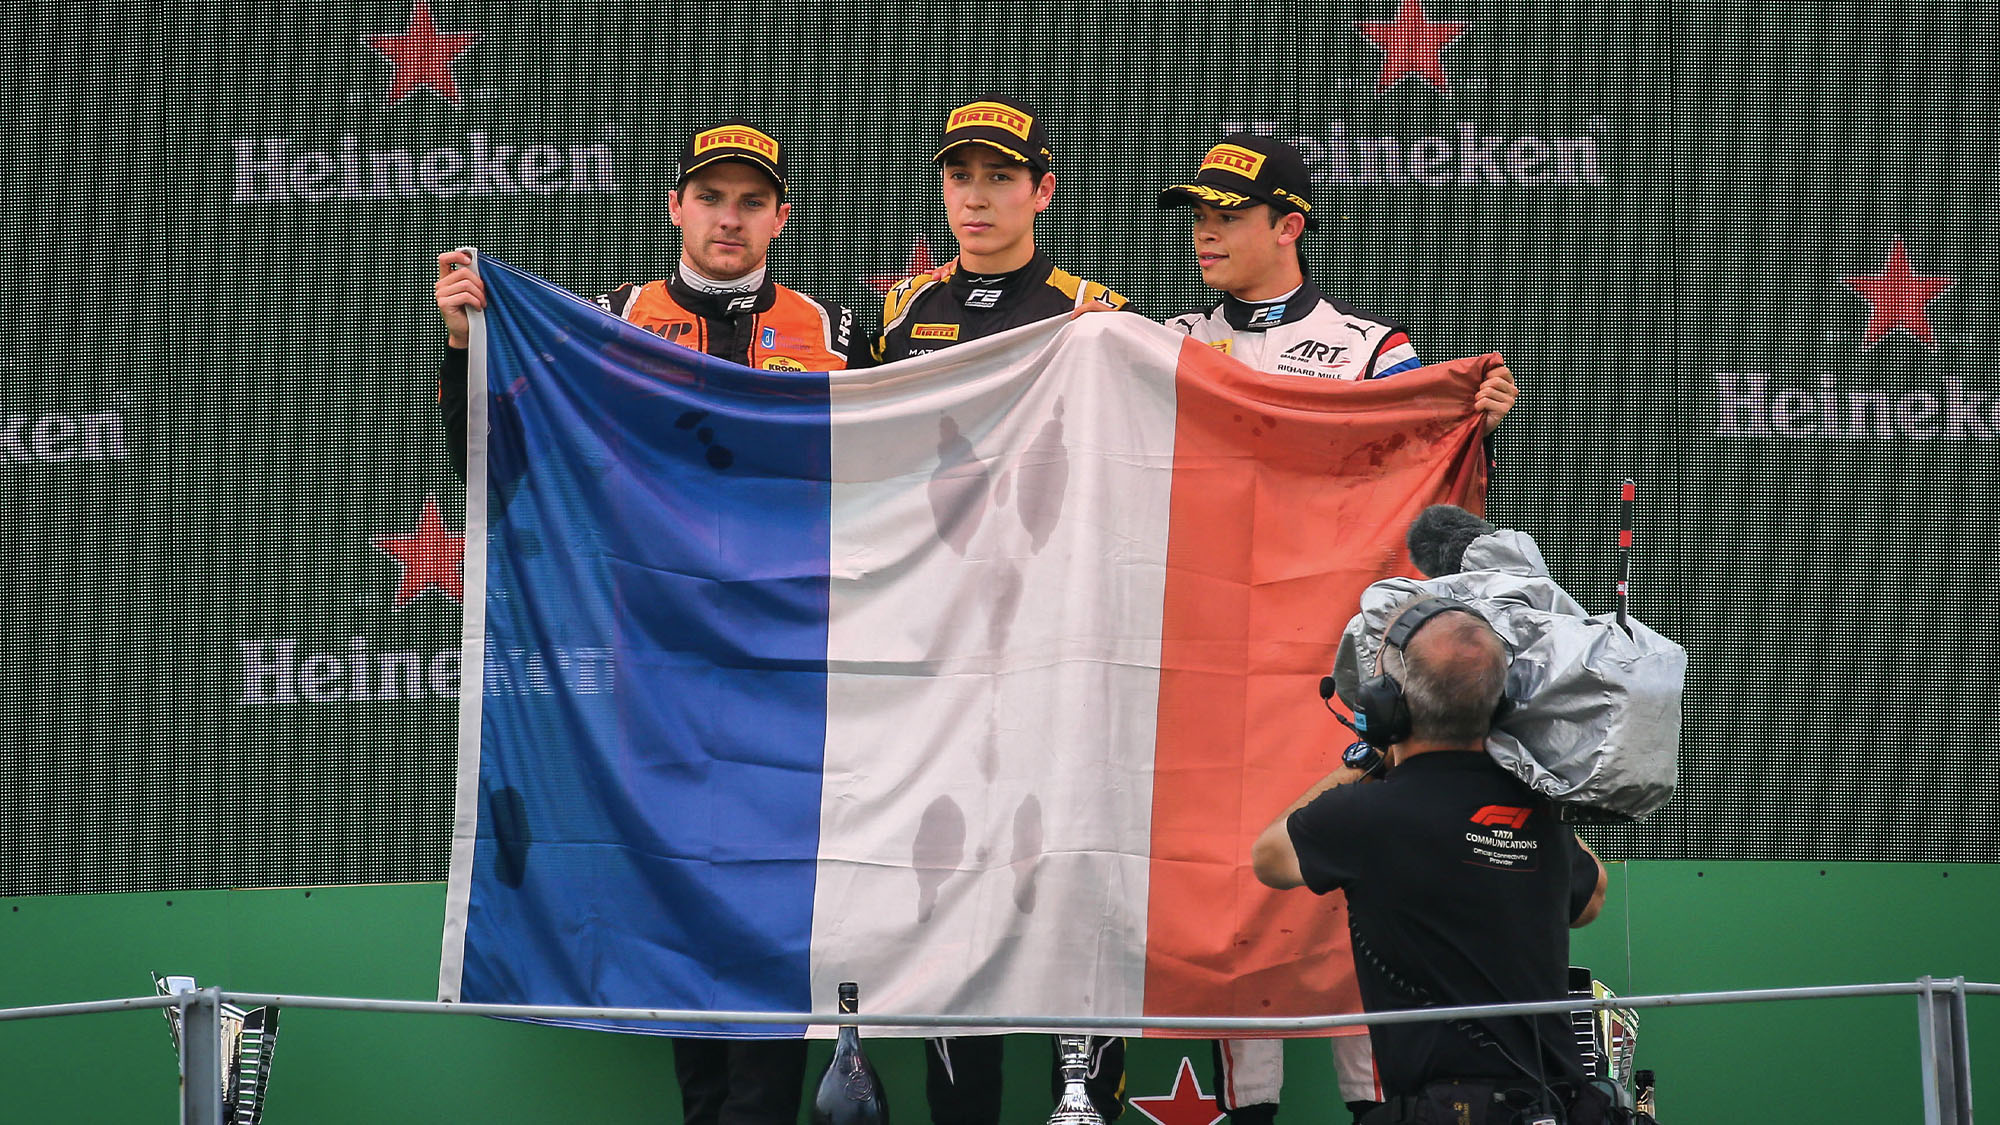 Jack Aitken Jordan king and Nyck de vries raise the french flag in tribute to Anthoine Hubert after a Formula 2 race at Monza in 2019